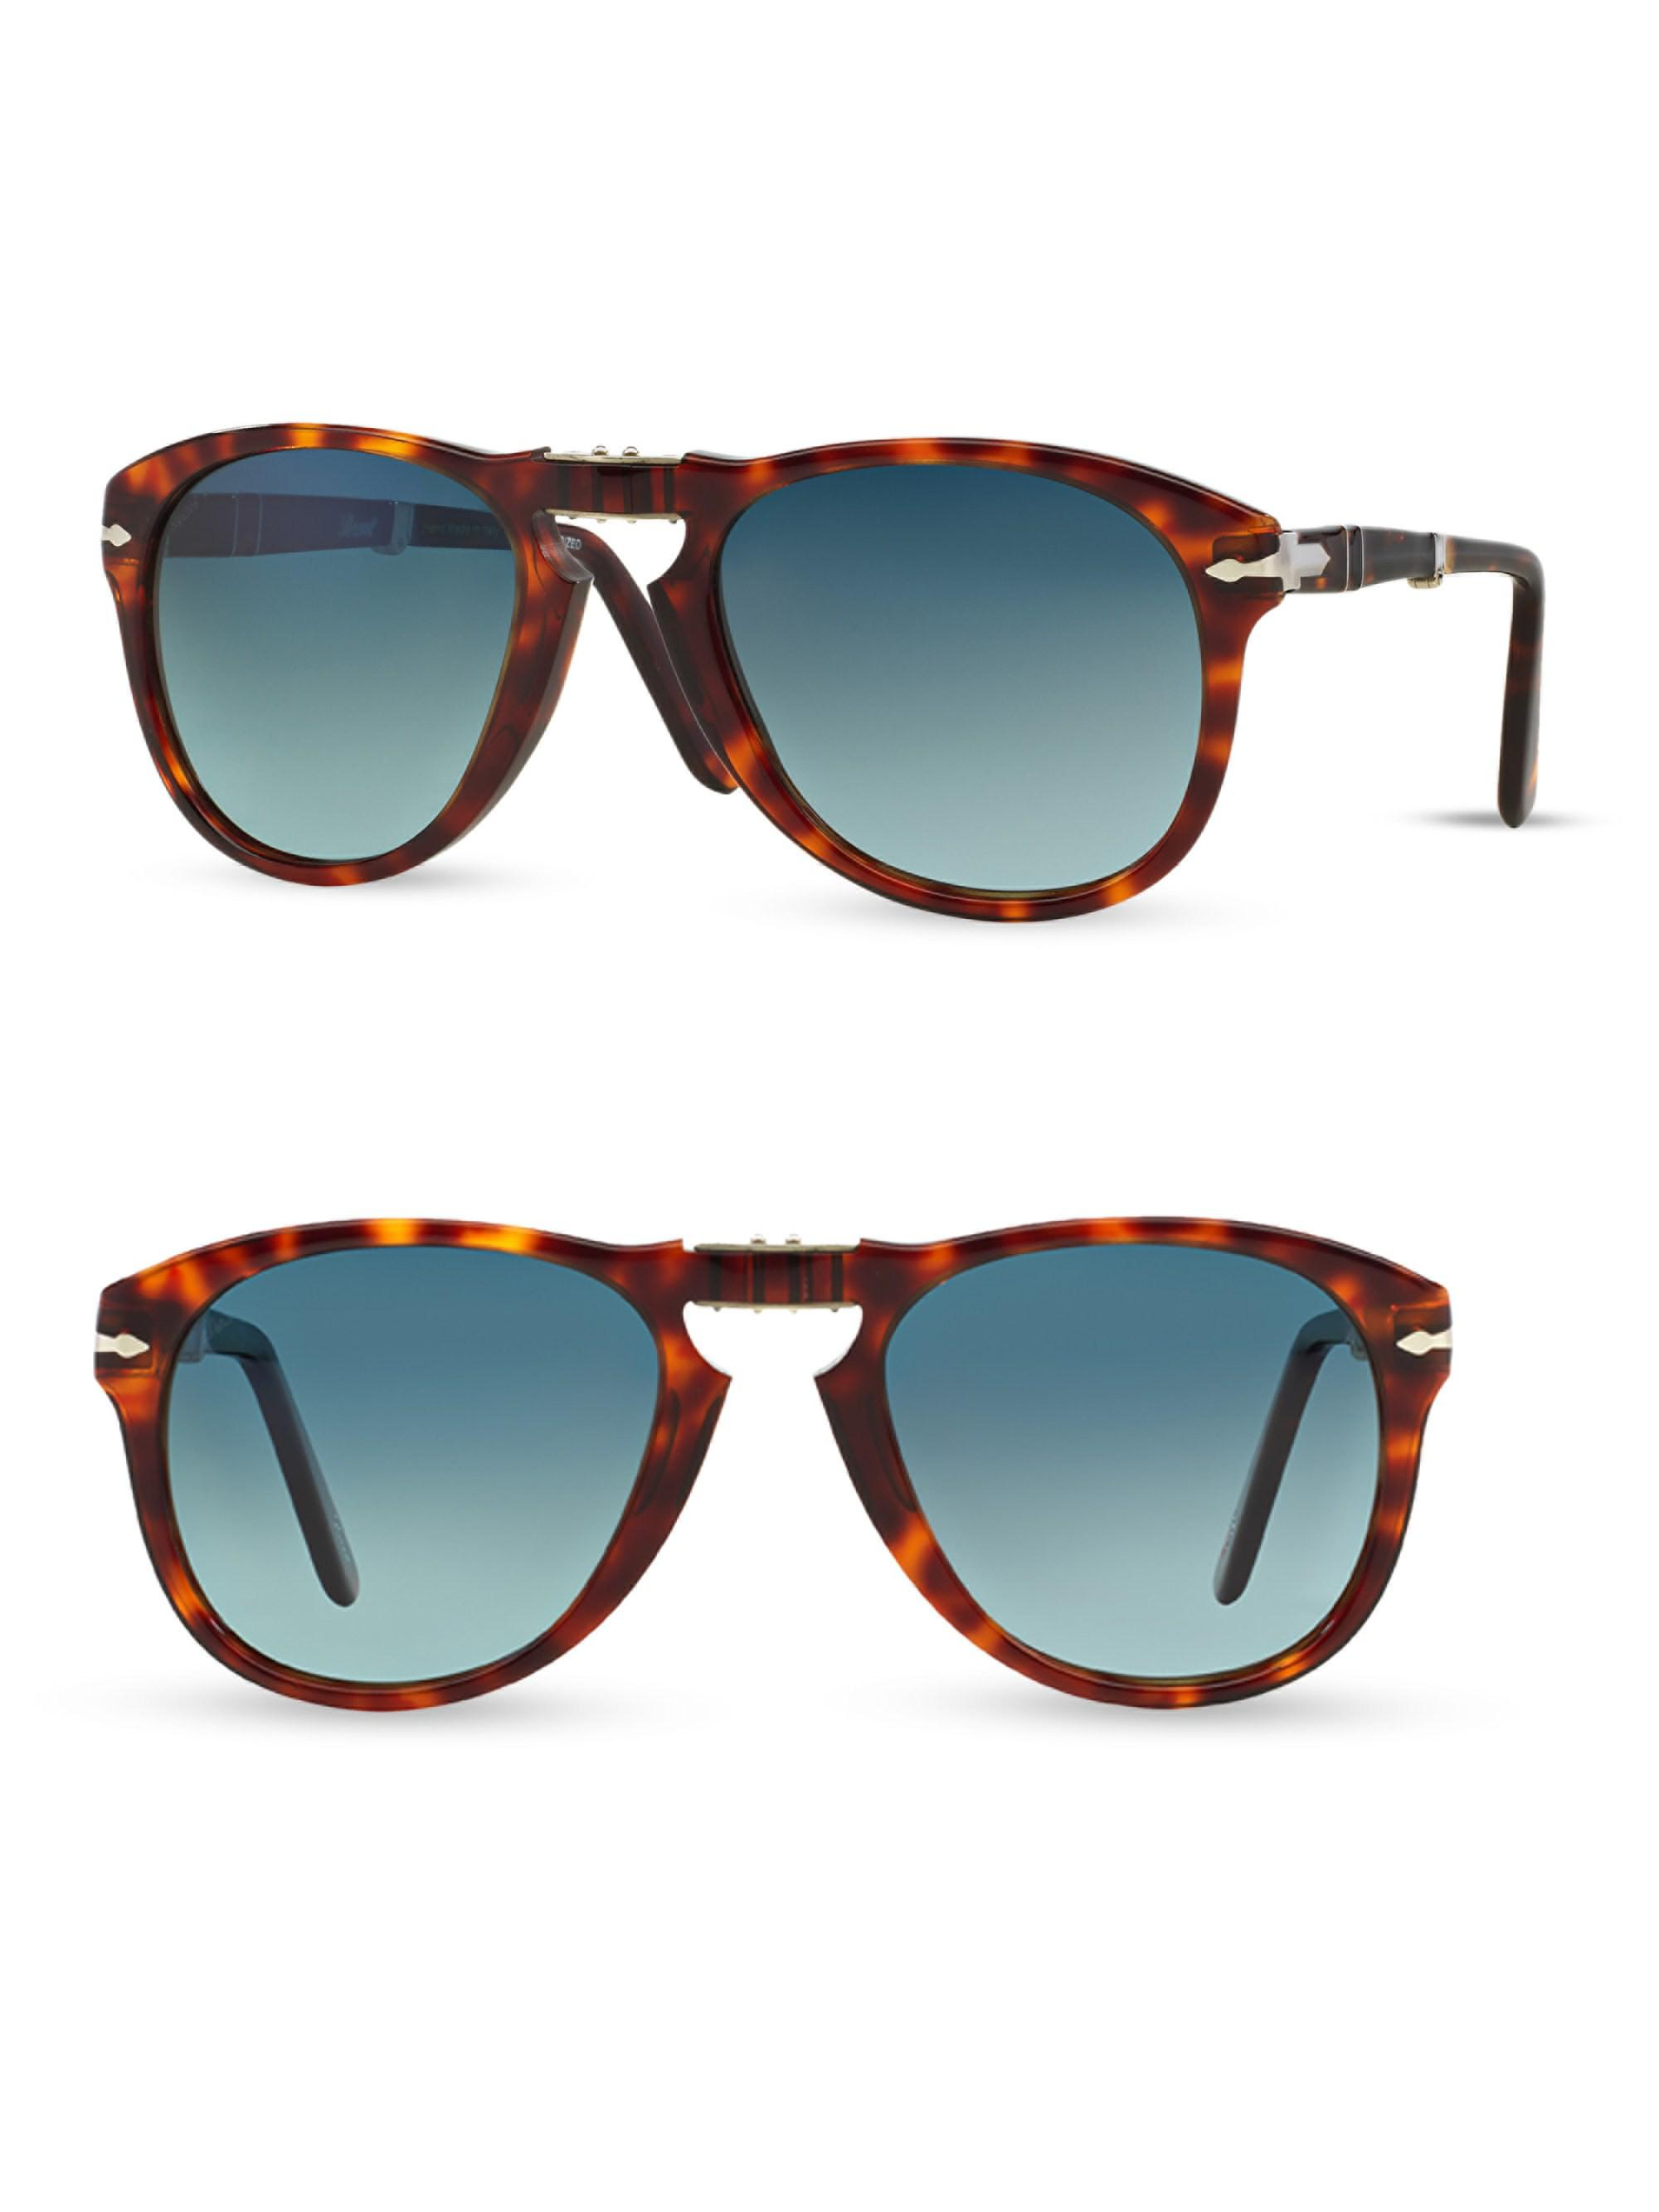 2368d6d53c4f1 Persol Folding Keyhole Sunglasses in Blue for Men - Lyst